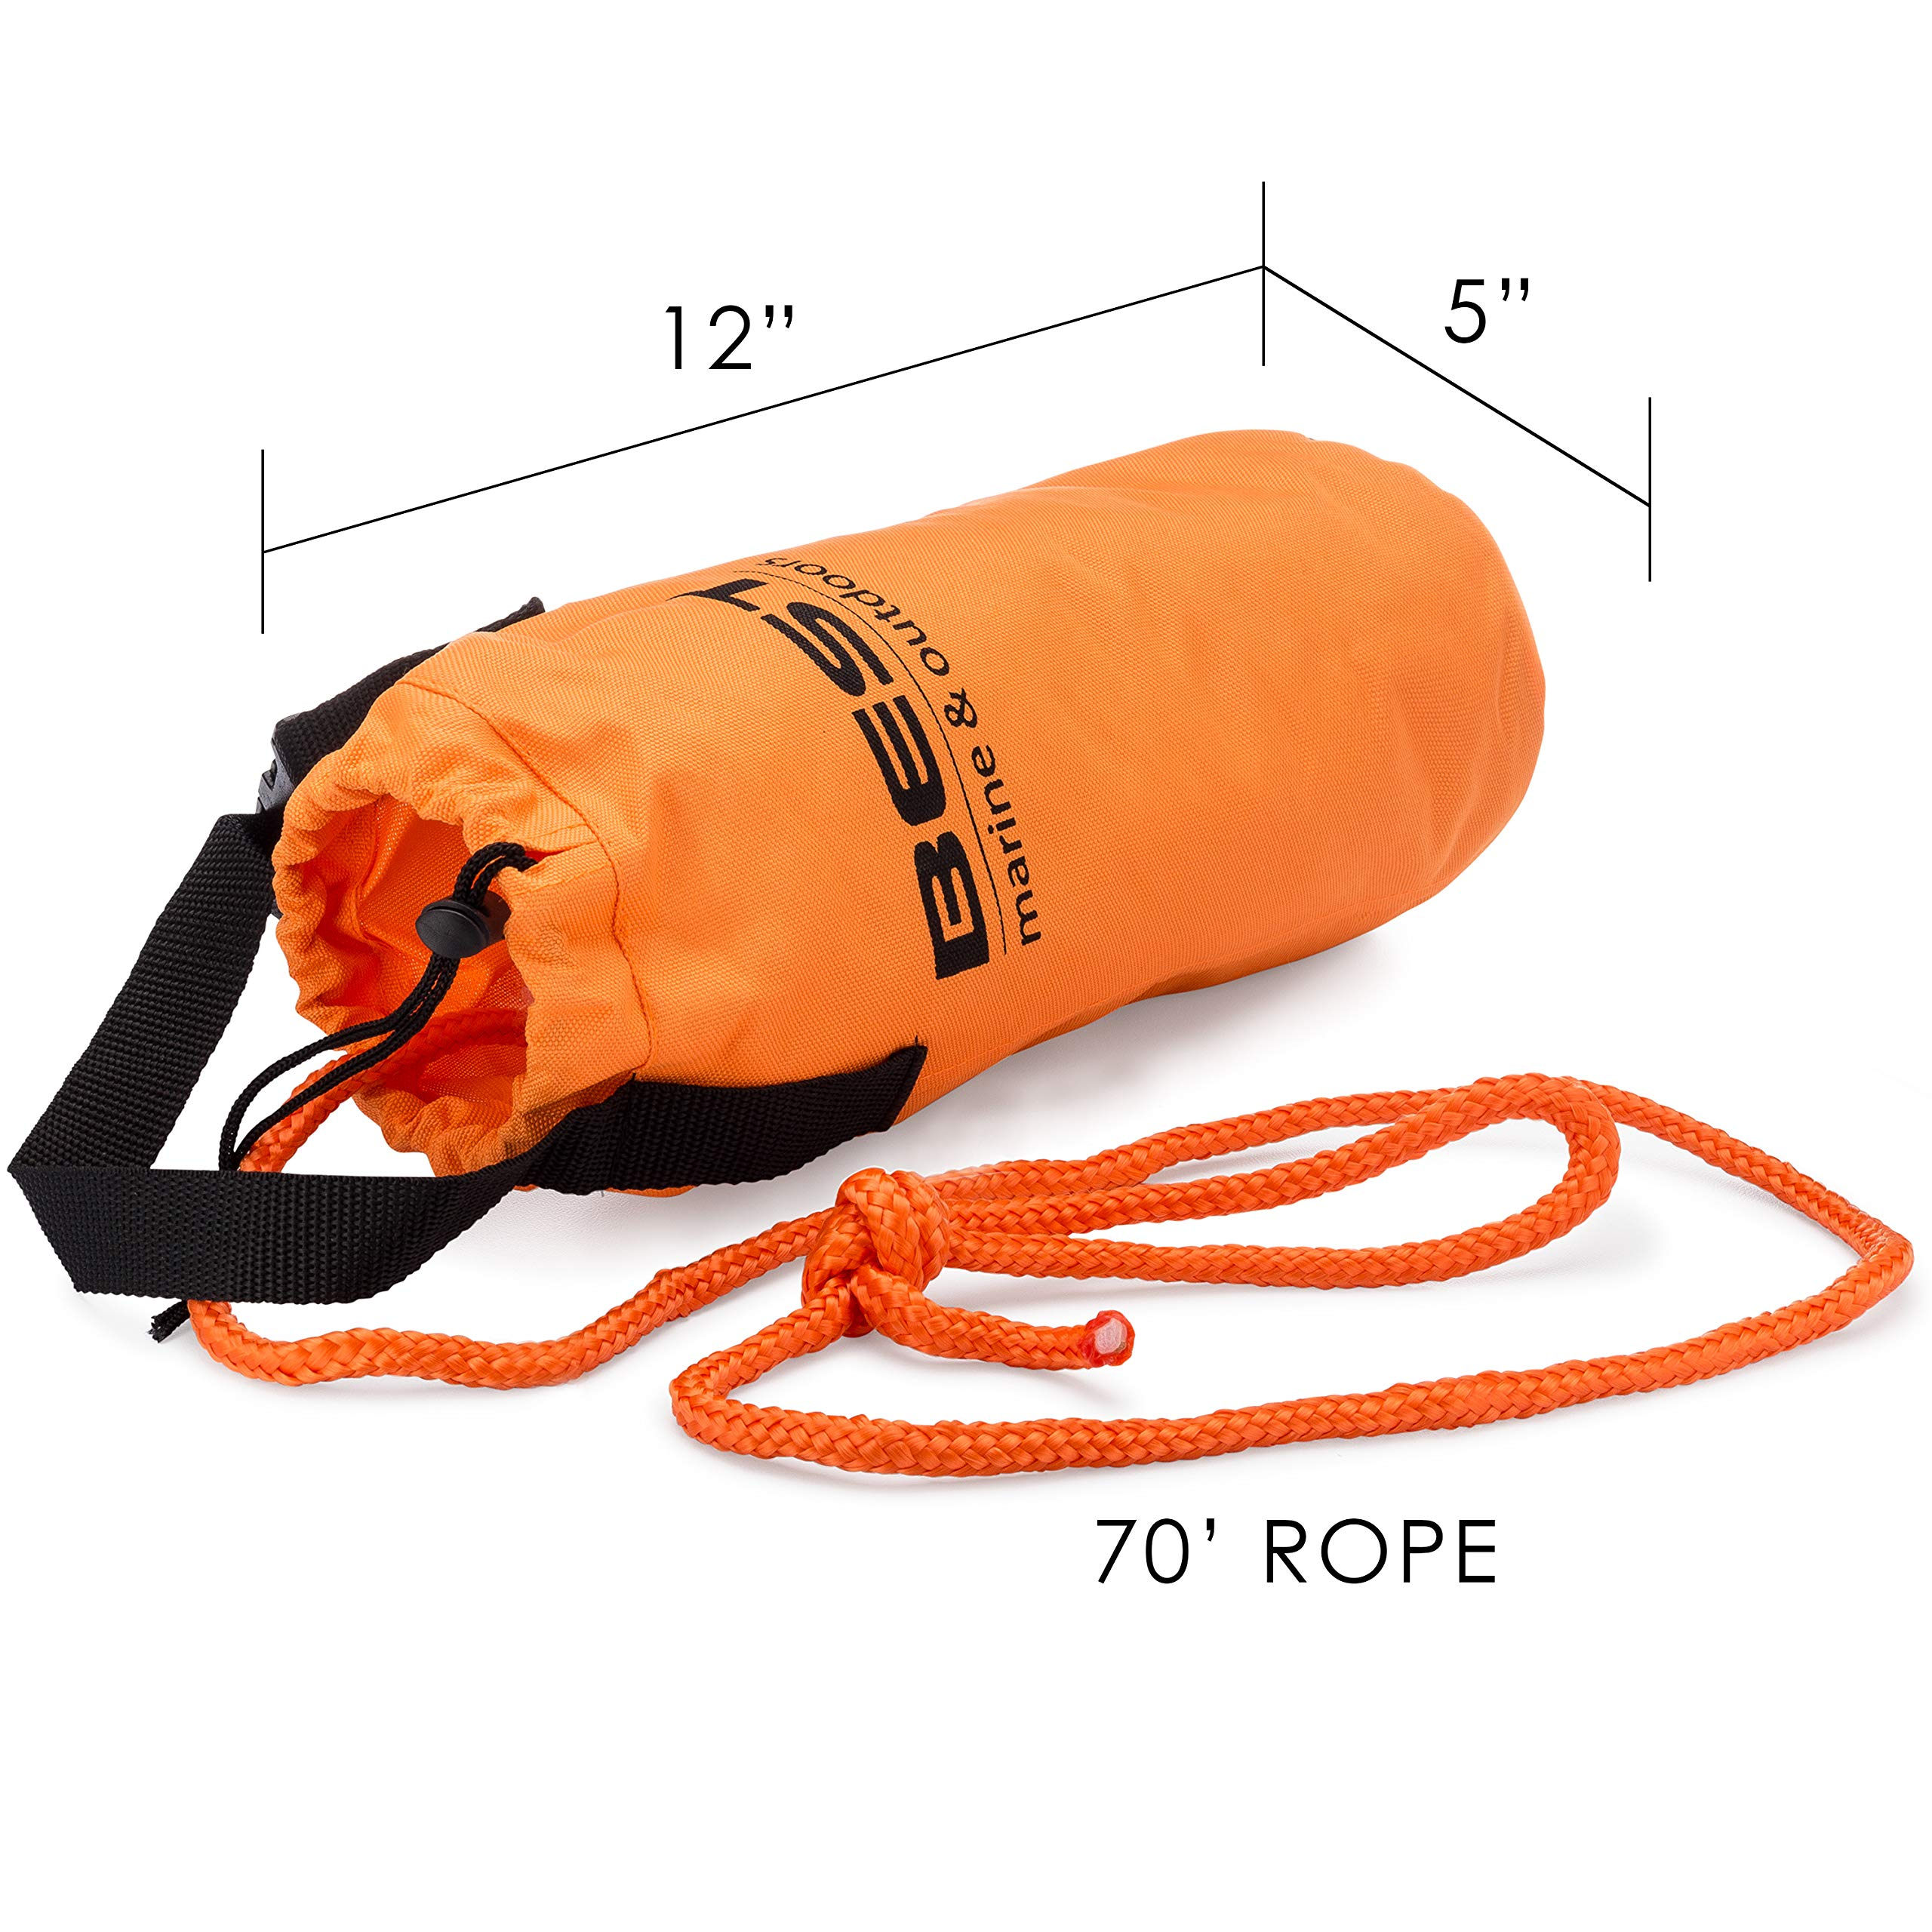 Best Marine Throw Bag Rescue Rope with 70 Feet of Marine Line. Throwable Flotation Device for Kayaking and Boating. High Visibility Water Rescue Safety Equipment for Kayak and Boat Emergency by BEST Marine and Outdoors